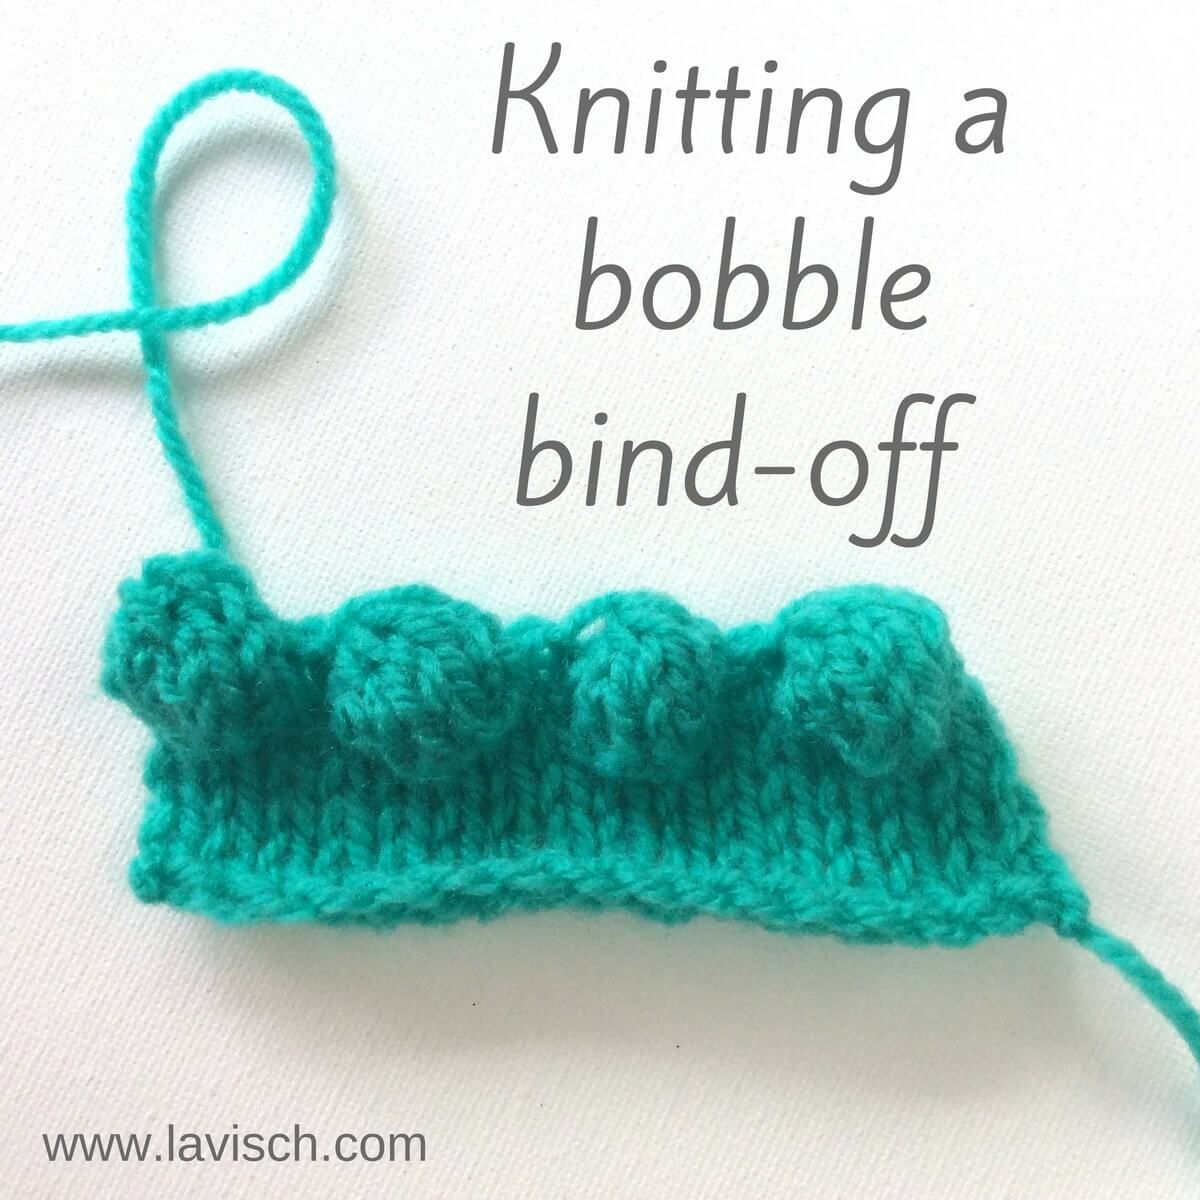 tutorial: knitting a bobble bind-off | Tutorials, Knit crochet and ...